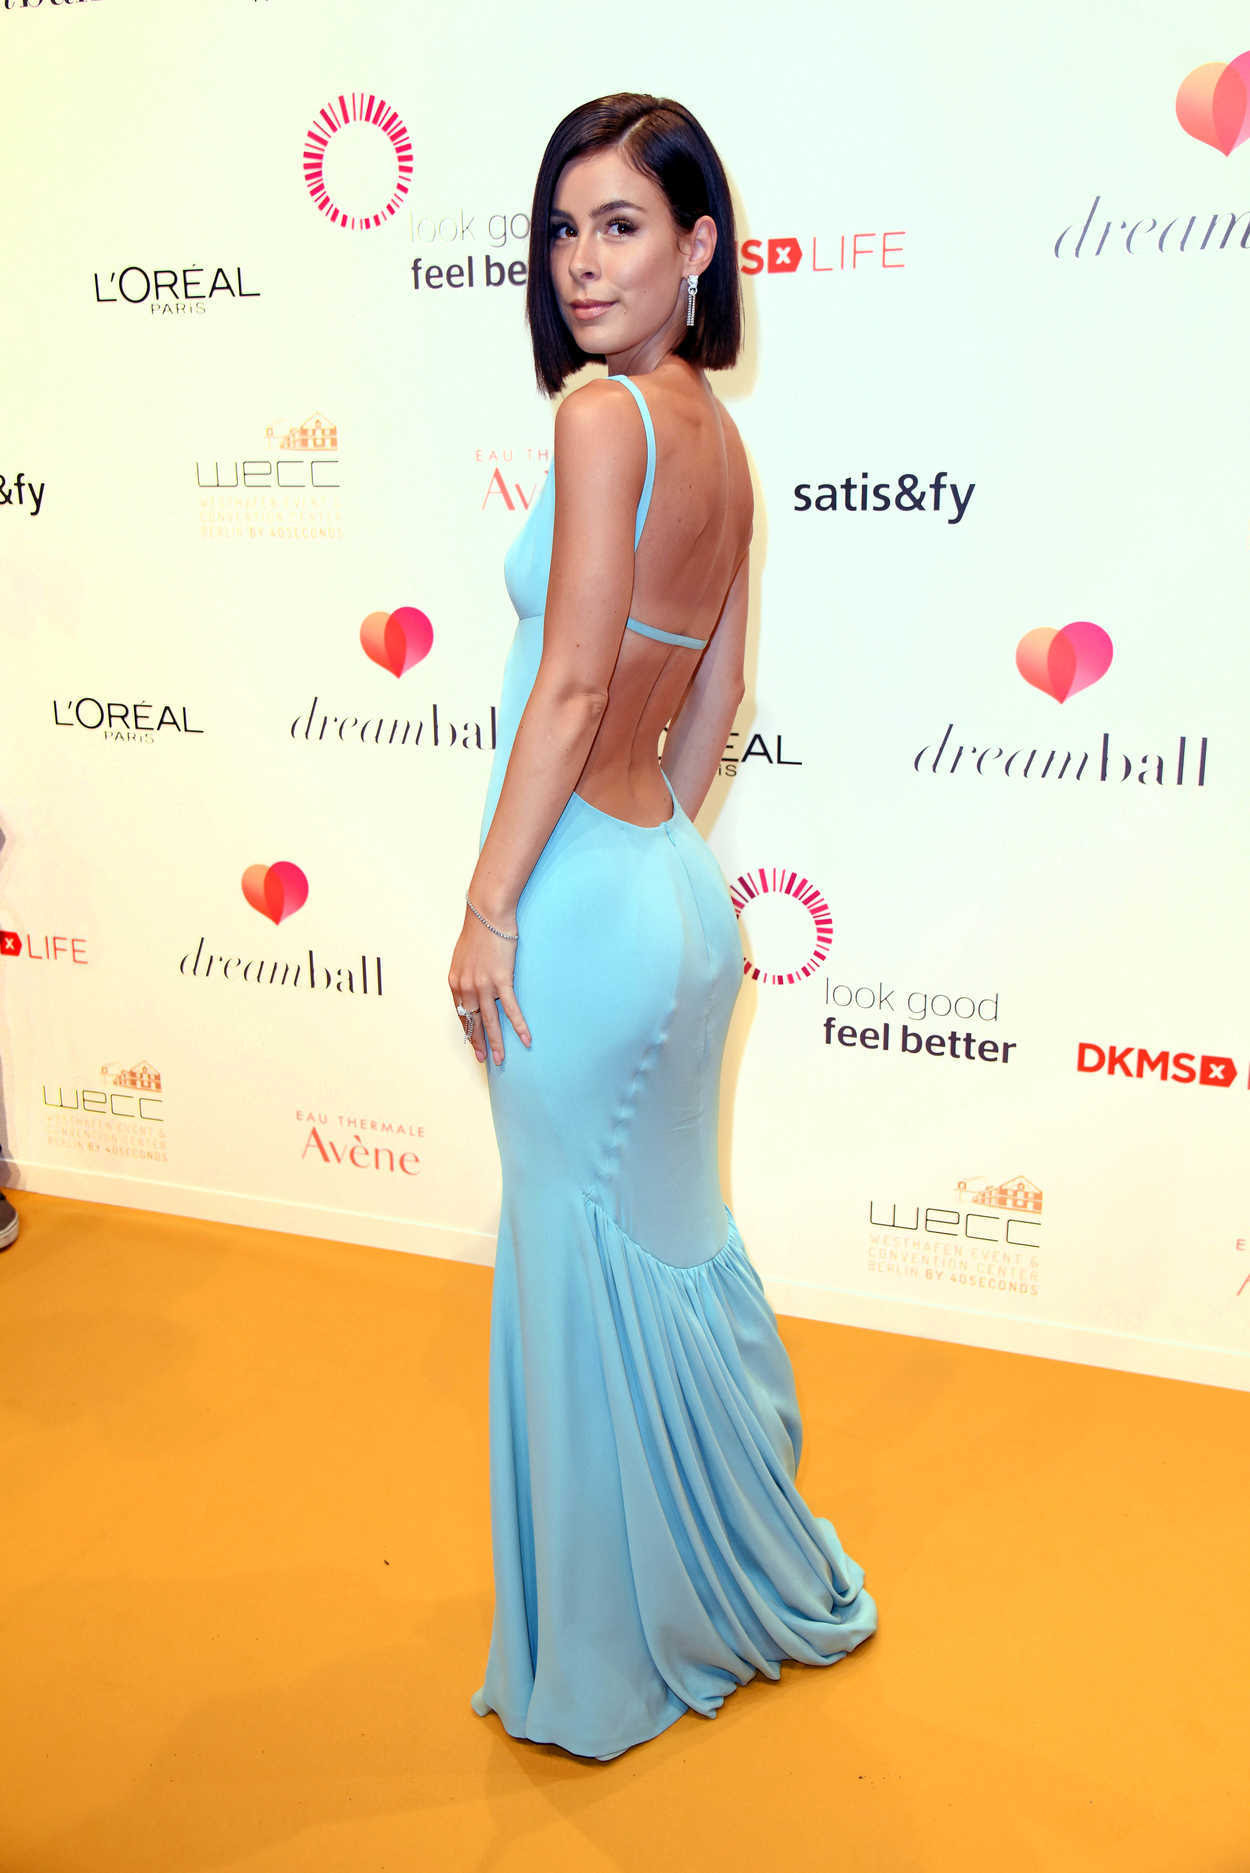 Lena Meyer-Landrut Attends 2018 Dreamball at the Westhafen ...